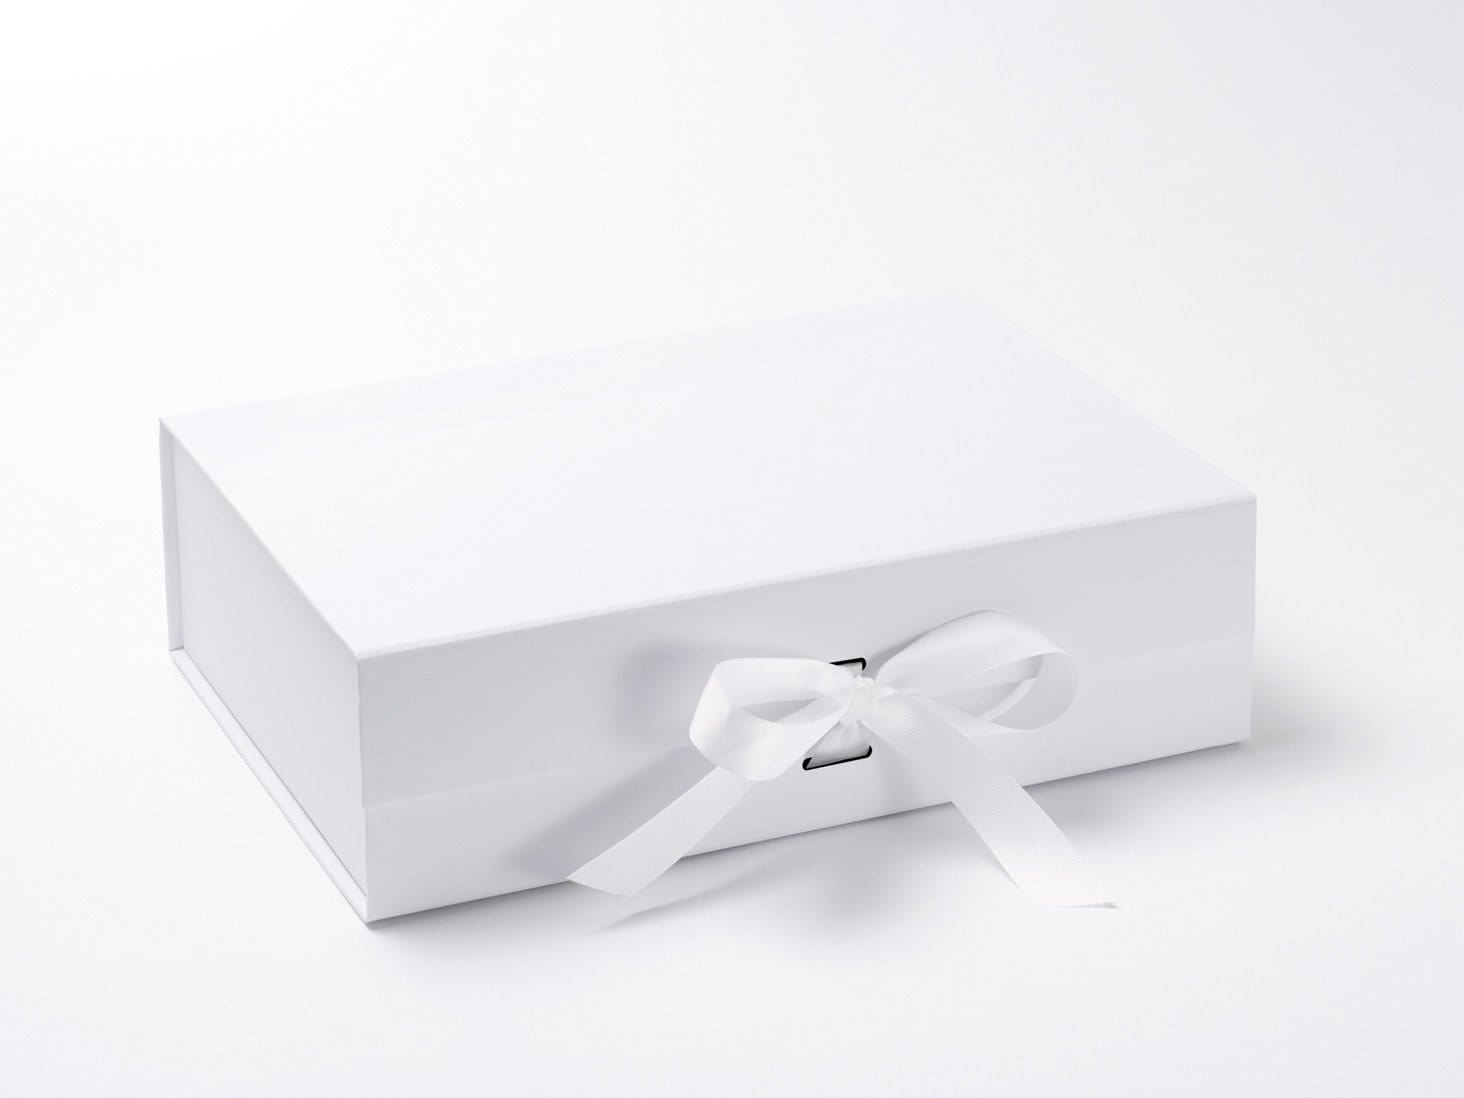 White A4 Deep Slot Gift Box with Removable Ribbon from Foldabox UK